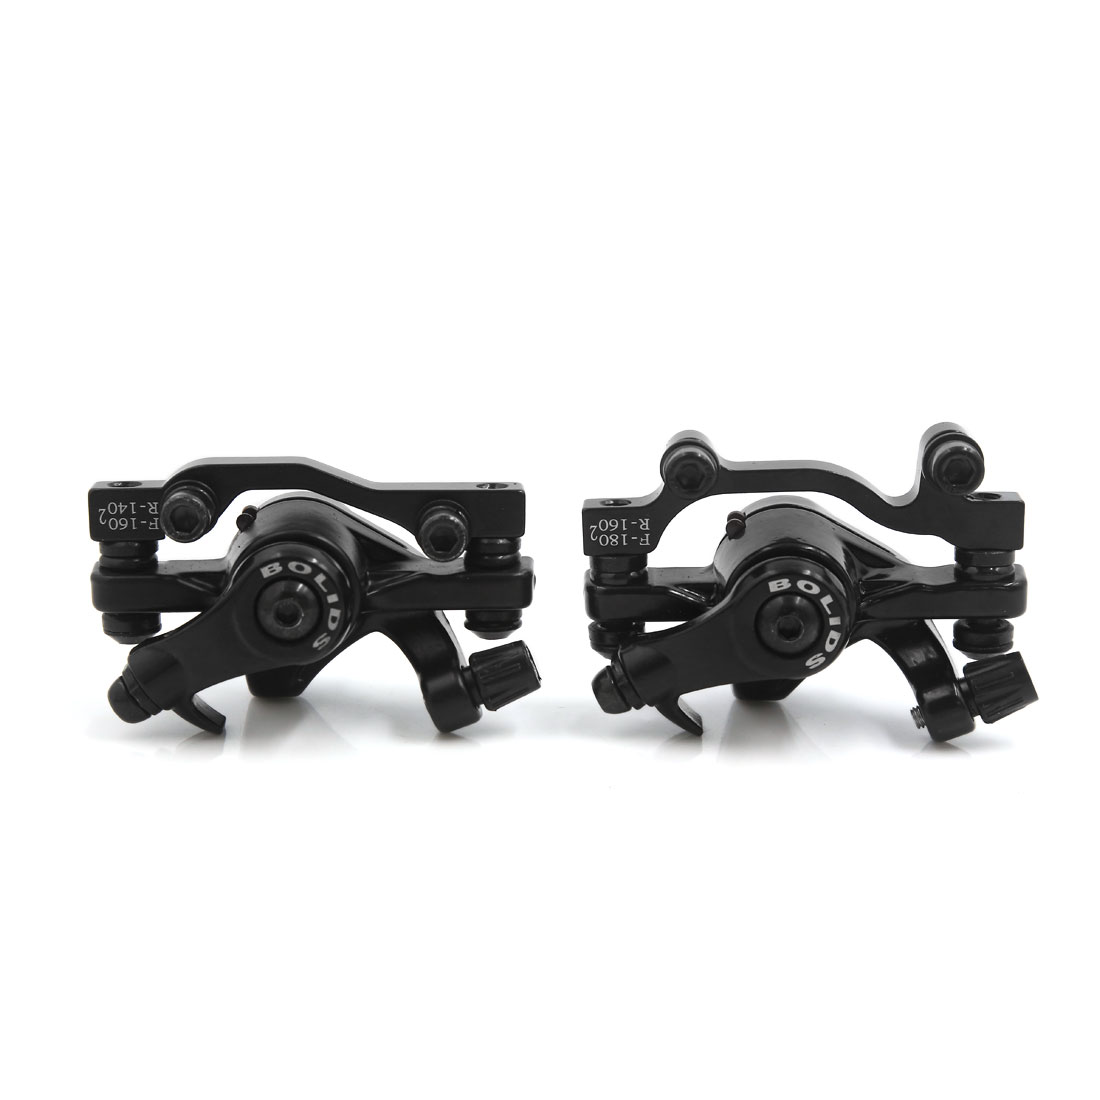 Mountain Bike Road Vehicles Bicycle Front and Rear Mechanical Disc Brake 2Pcs